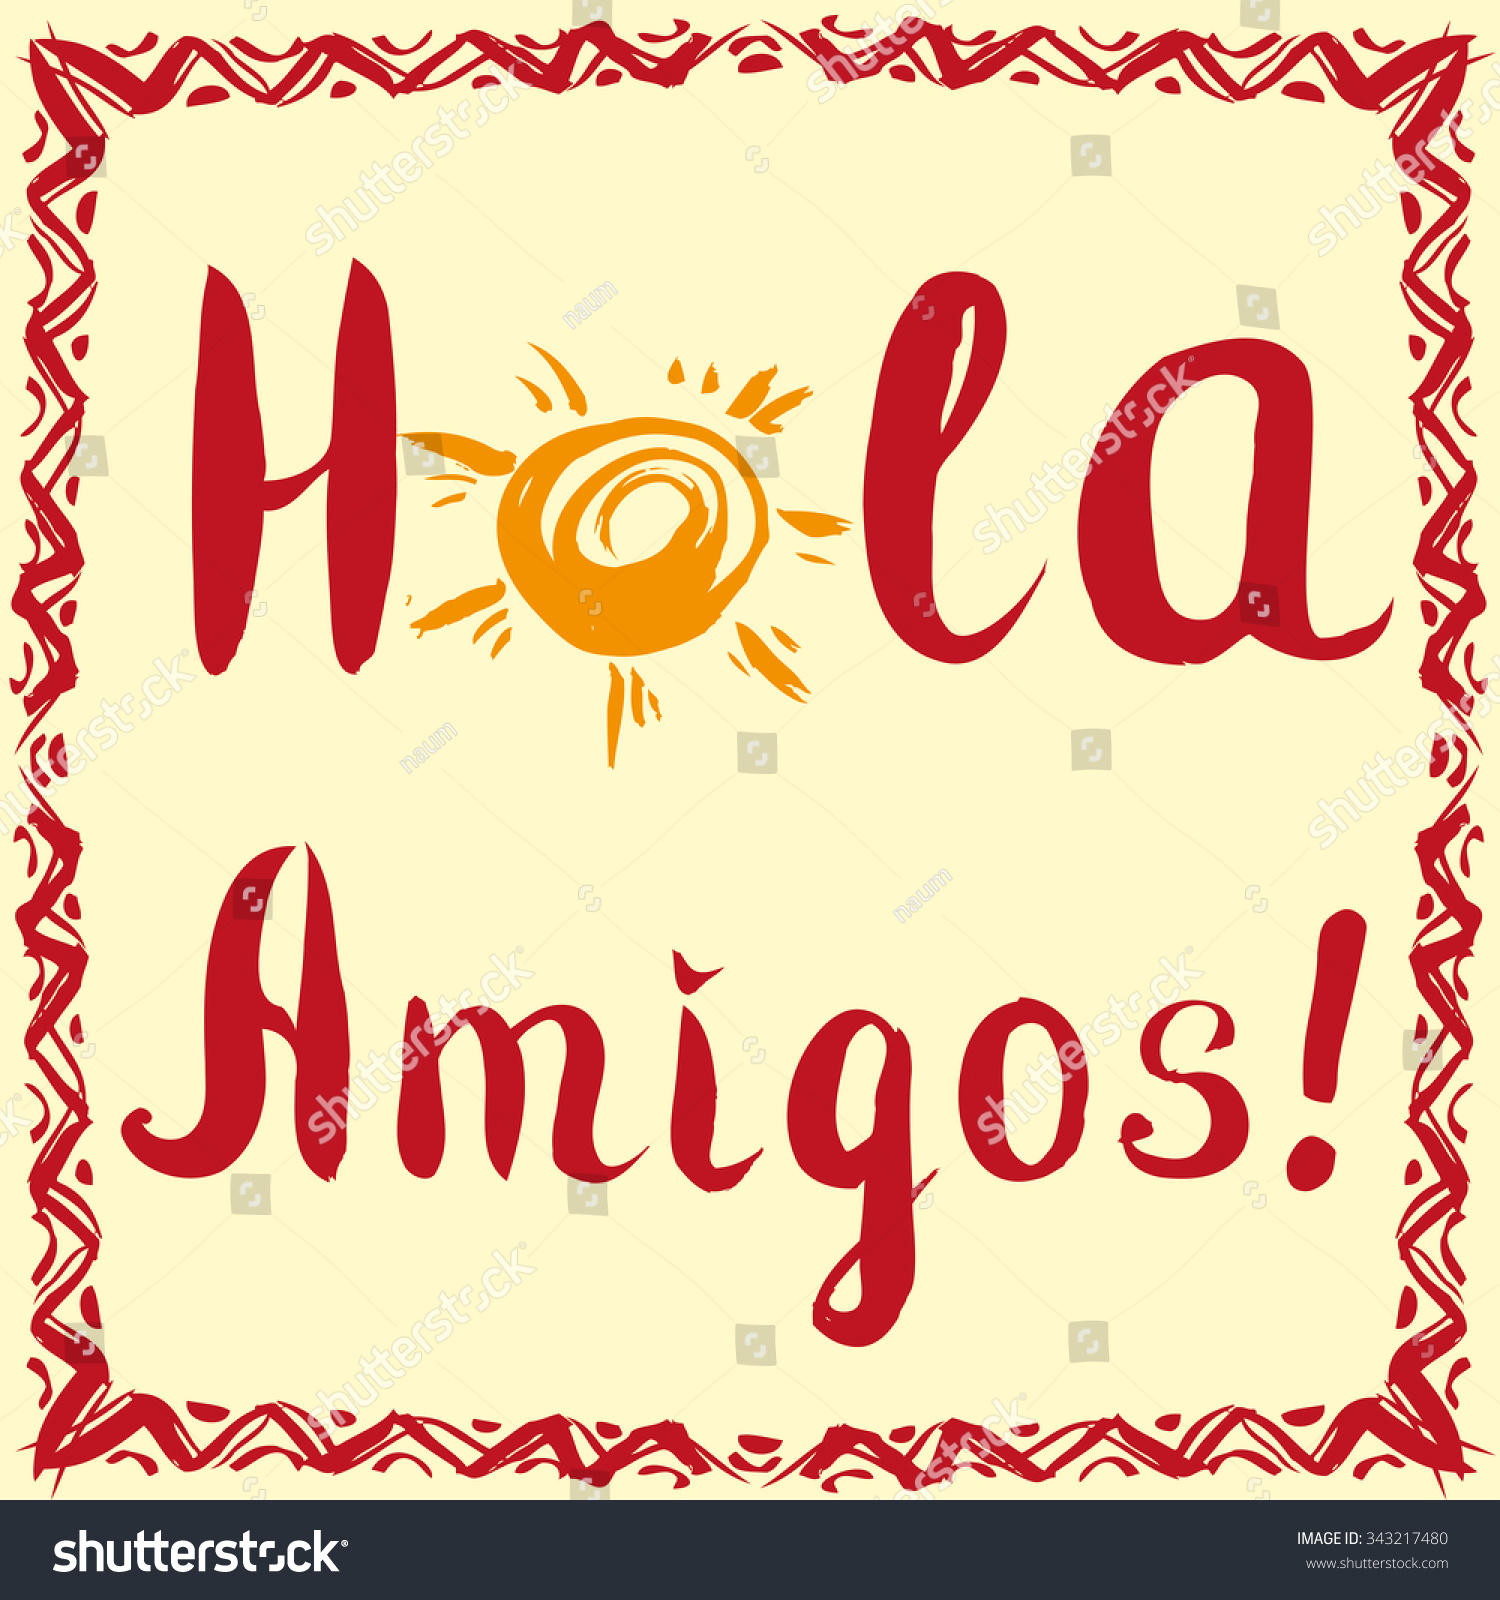 Stock Photo Hola Amigos Card Calligraphy Bright Colored Sombrero Design Image36192300 also Big in addition 12 also Stock Vector Hola Amigos Card With Calligraphy And Sun Hand Drawn Vector together with Stock Illustration Snowman Drawing Hat Twig Arms Image65125965. on old man id card